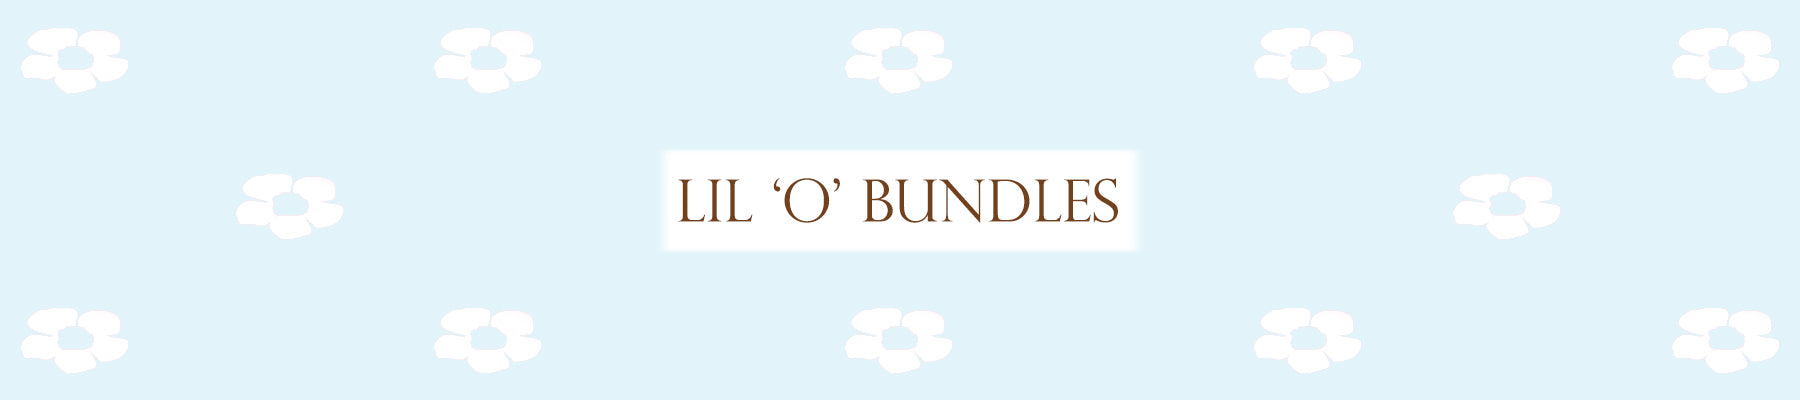 lil'o'bundles-bundles-packages-banner